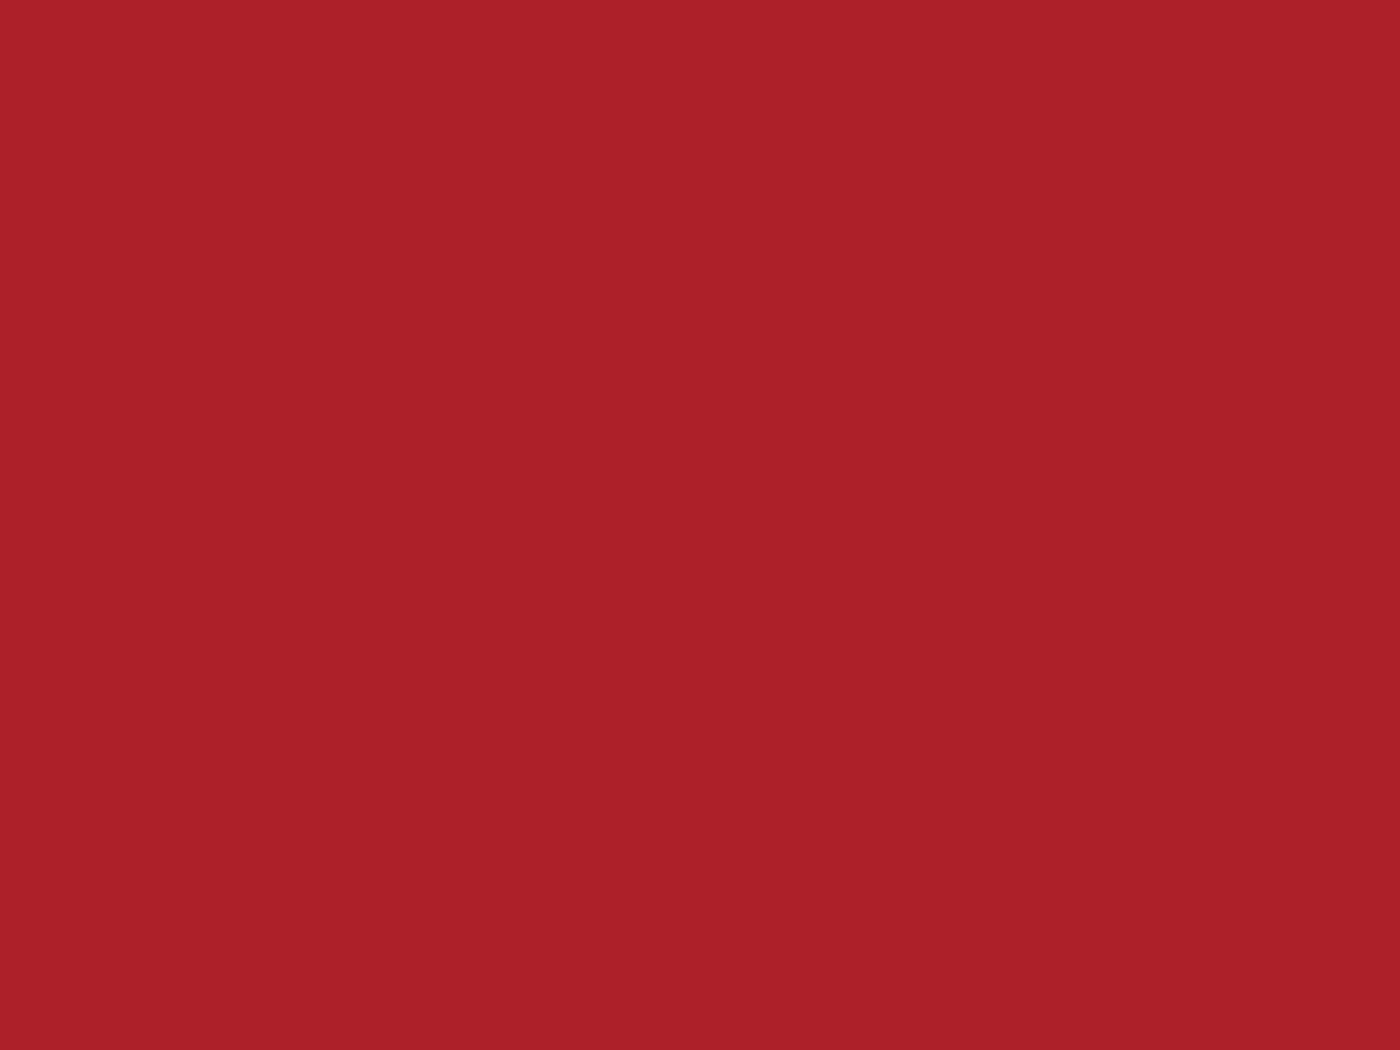 1400x1050 Upsdell Red Solid Color Background